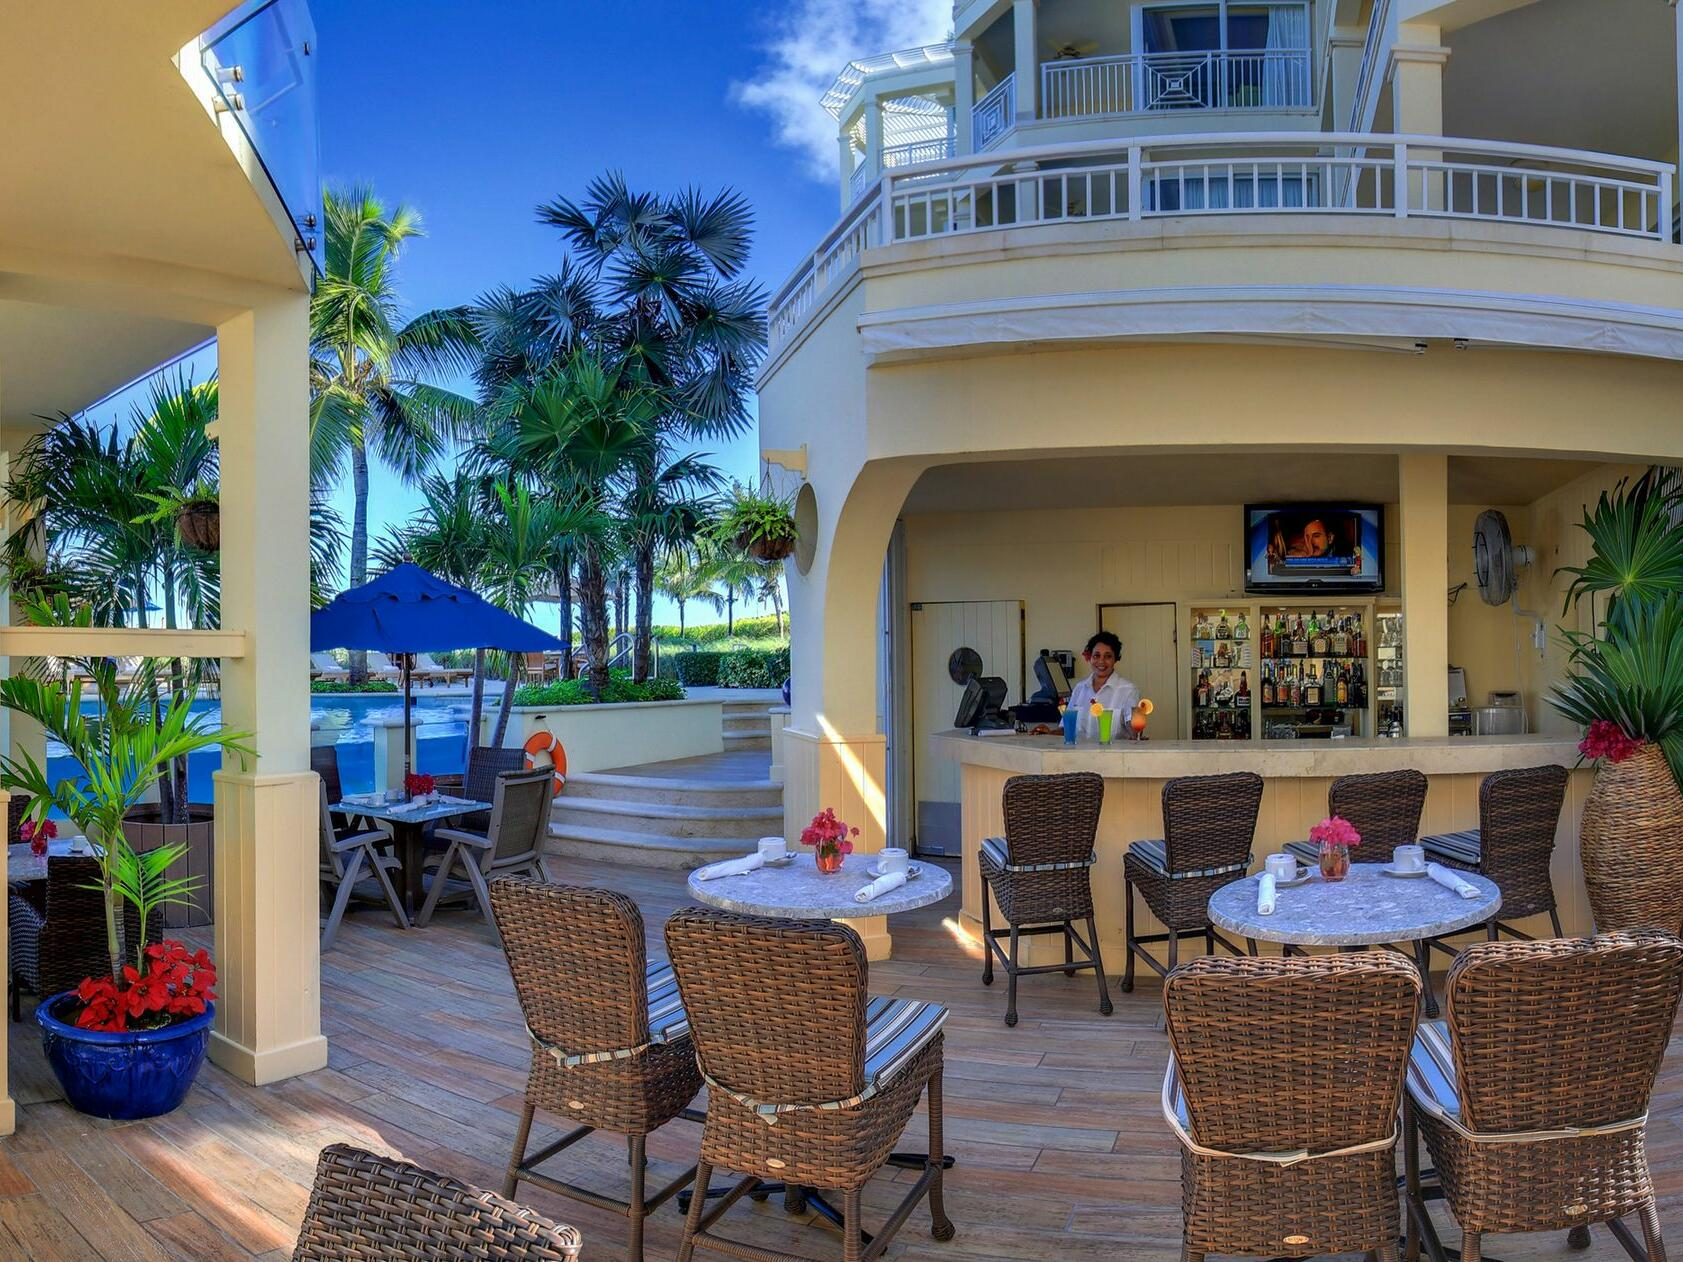 View of Jojo's Poolside Cafe at Windsong Resort On The Reef